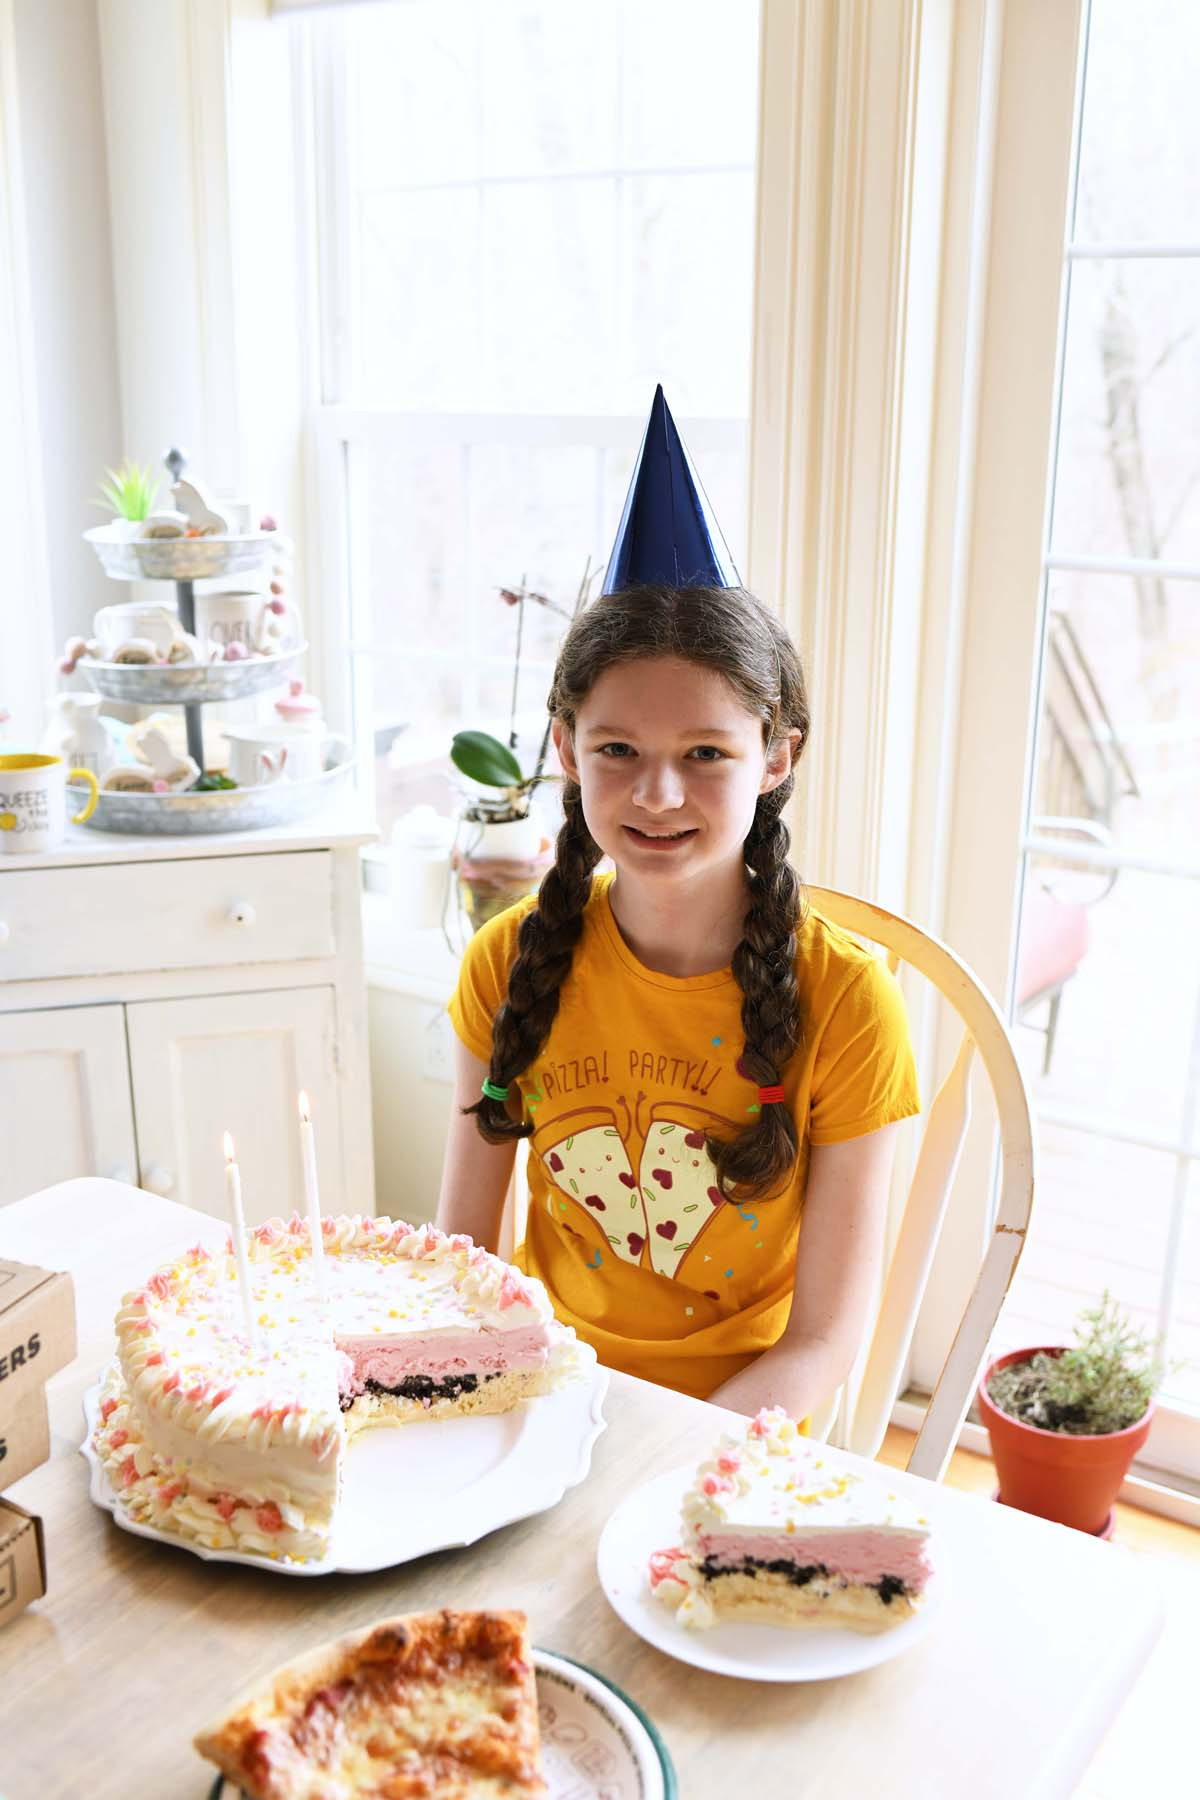 Girl at a Pizza Party with a blue party hat on.